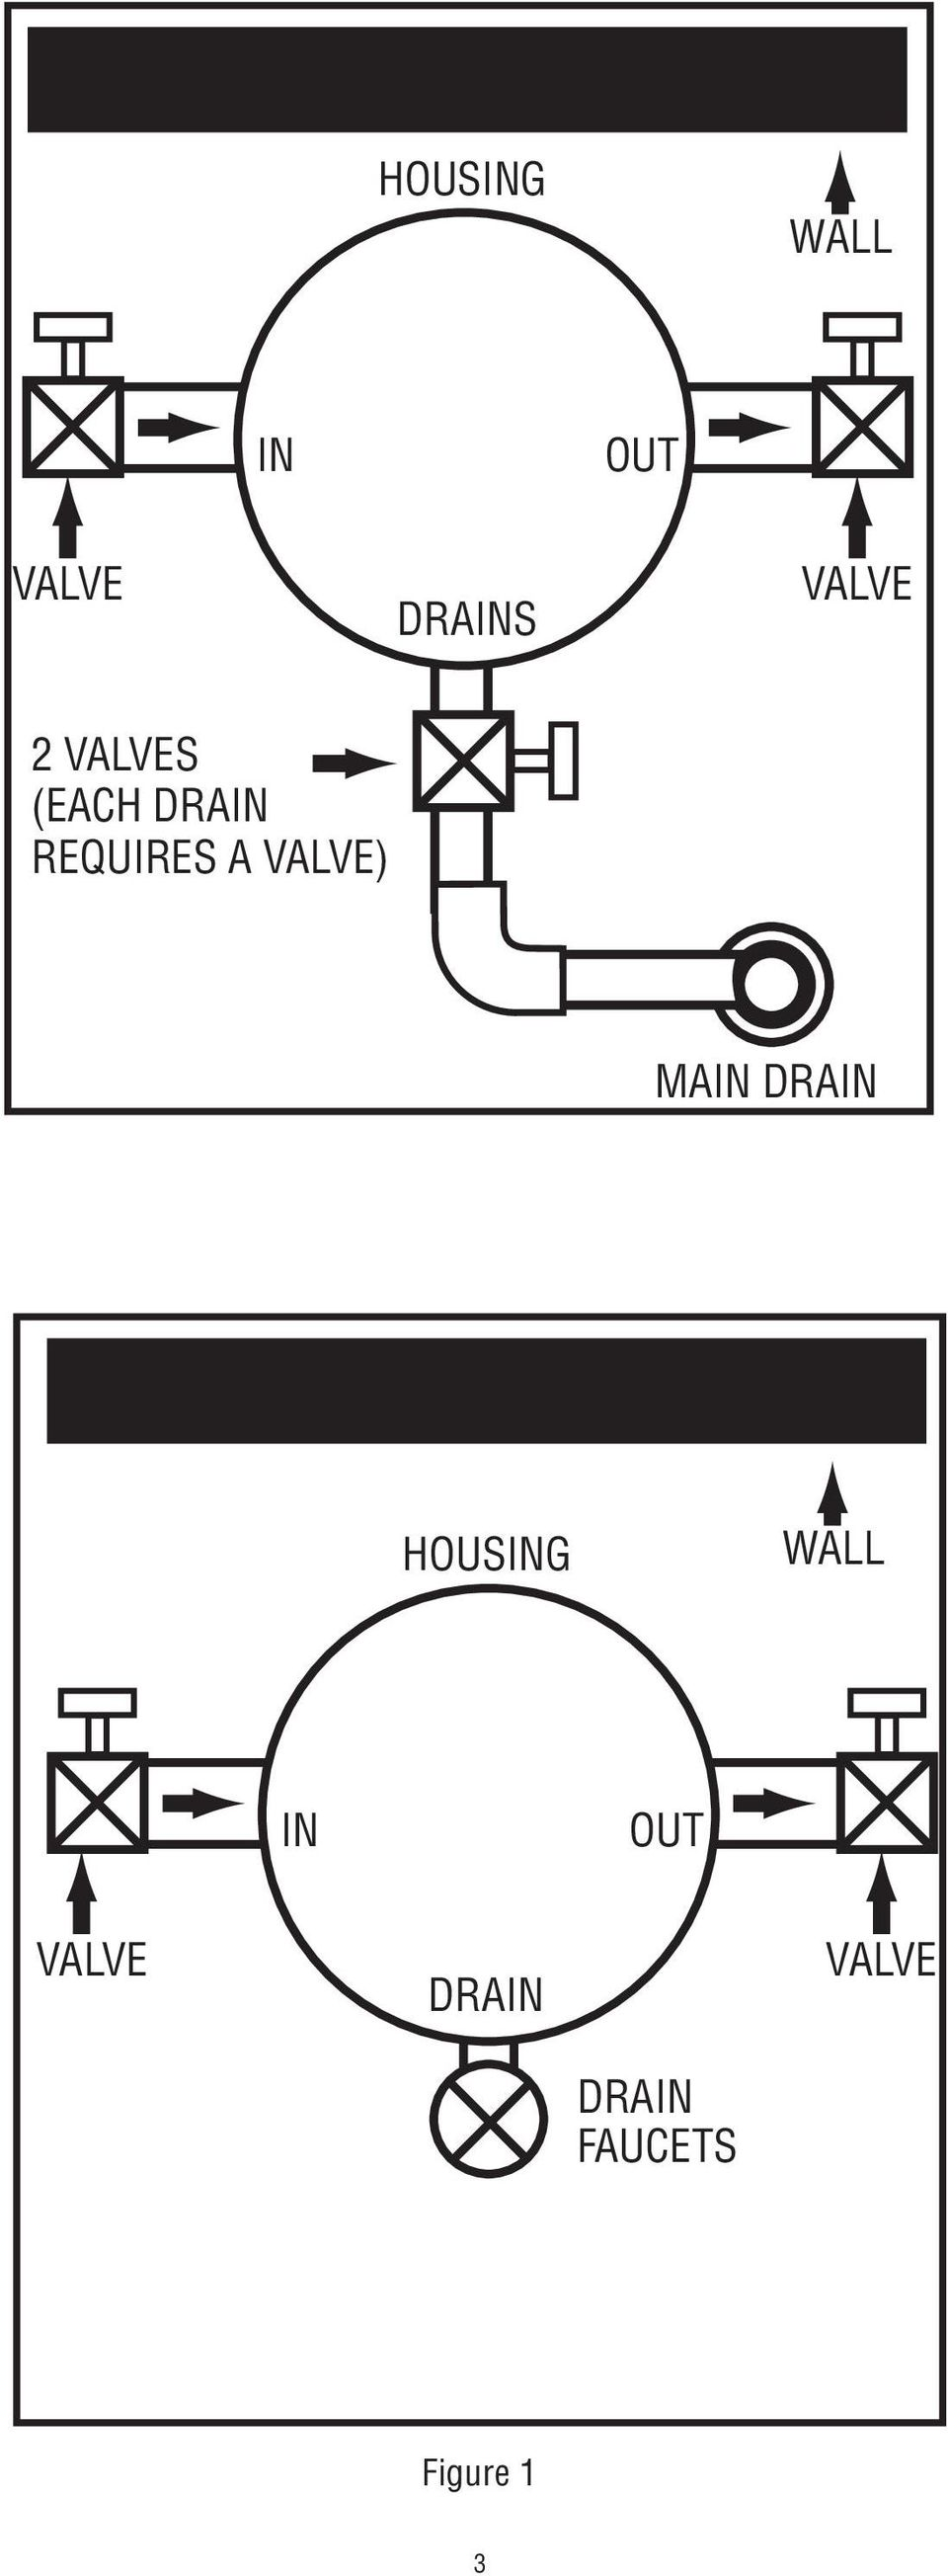 VALVE) MAIN DRAIN HOUSING WALL IN OUT